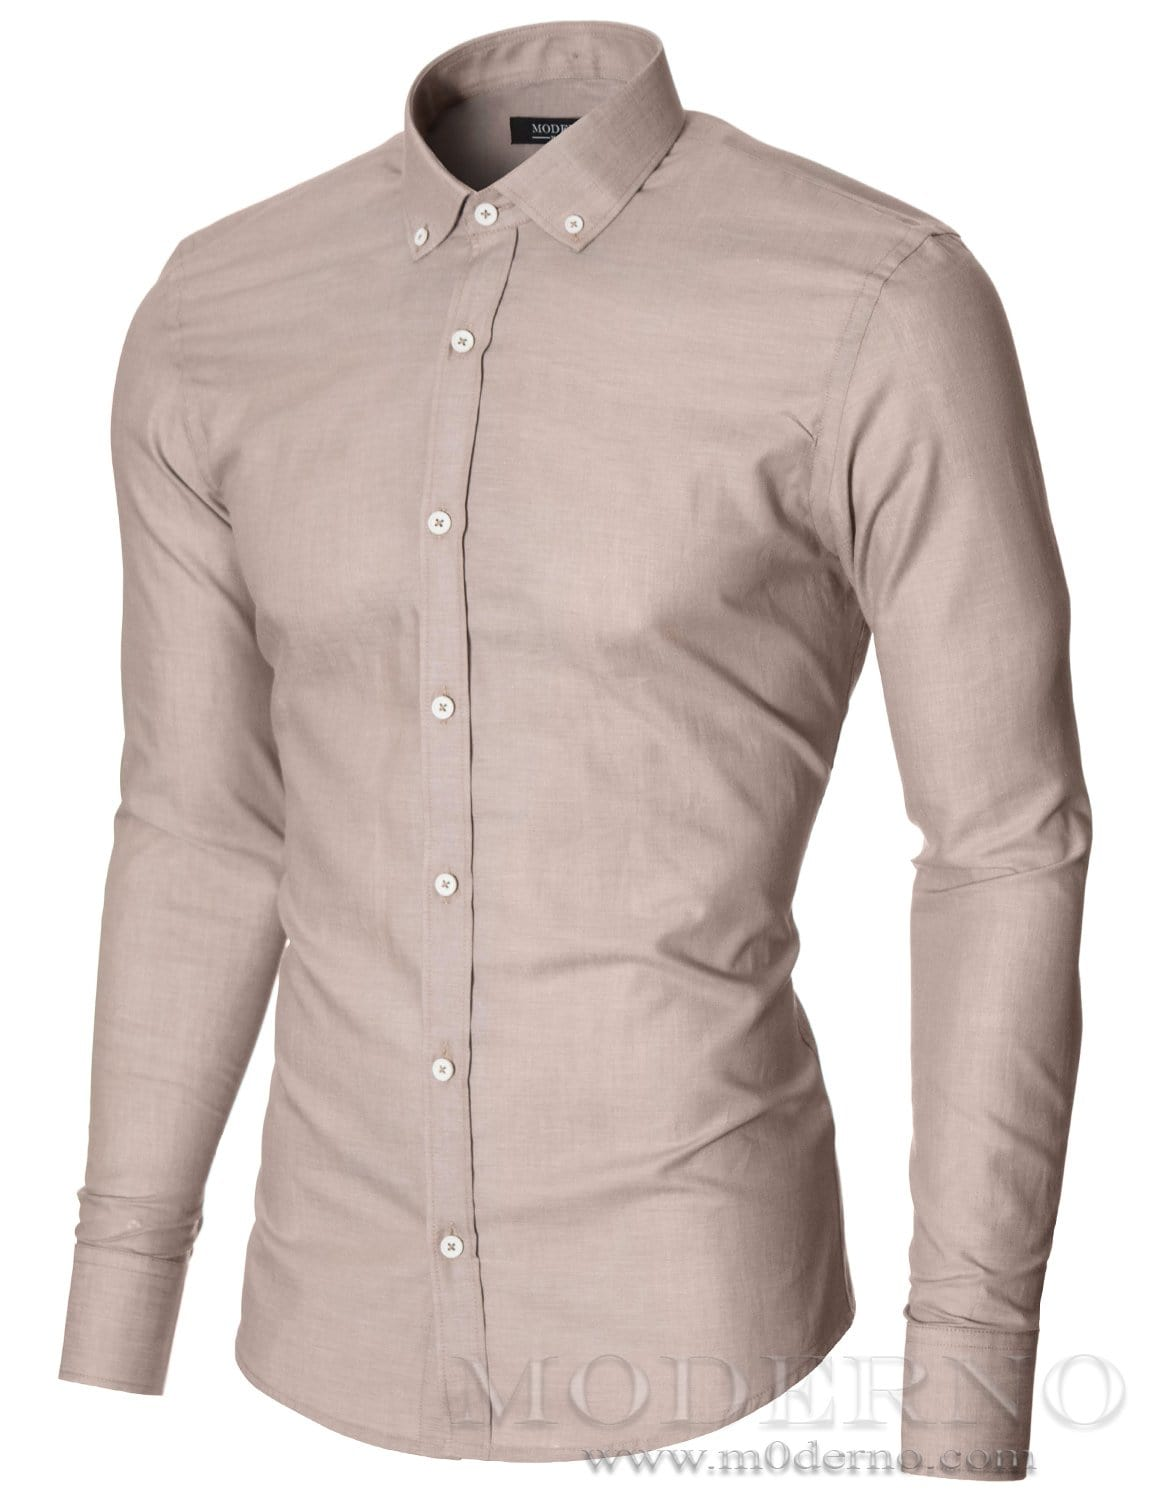 Mens Slim Fit Dress Shirt With Contrast White Buttons Beige By